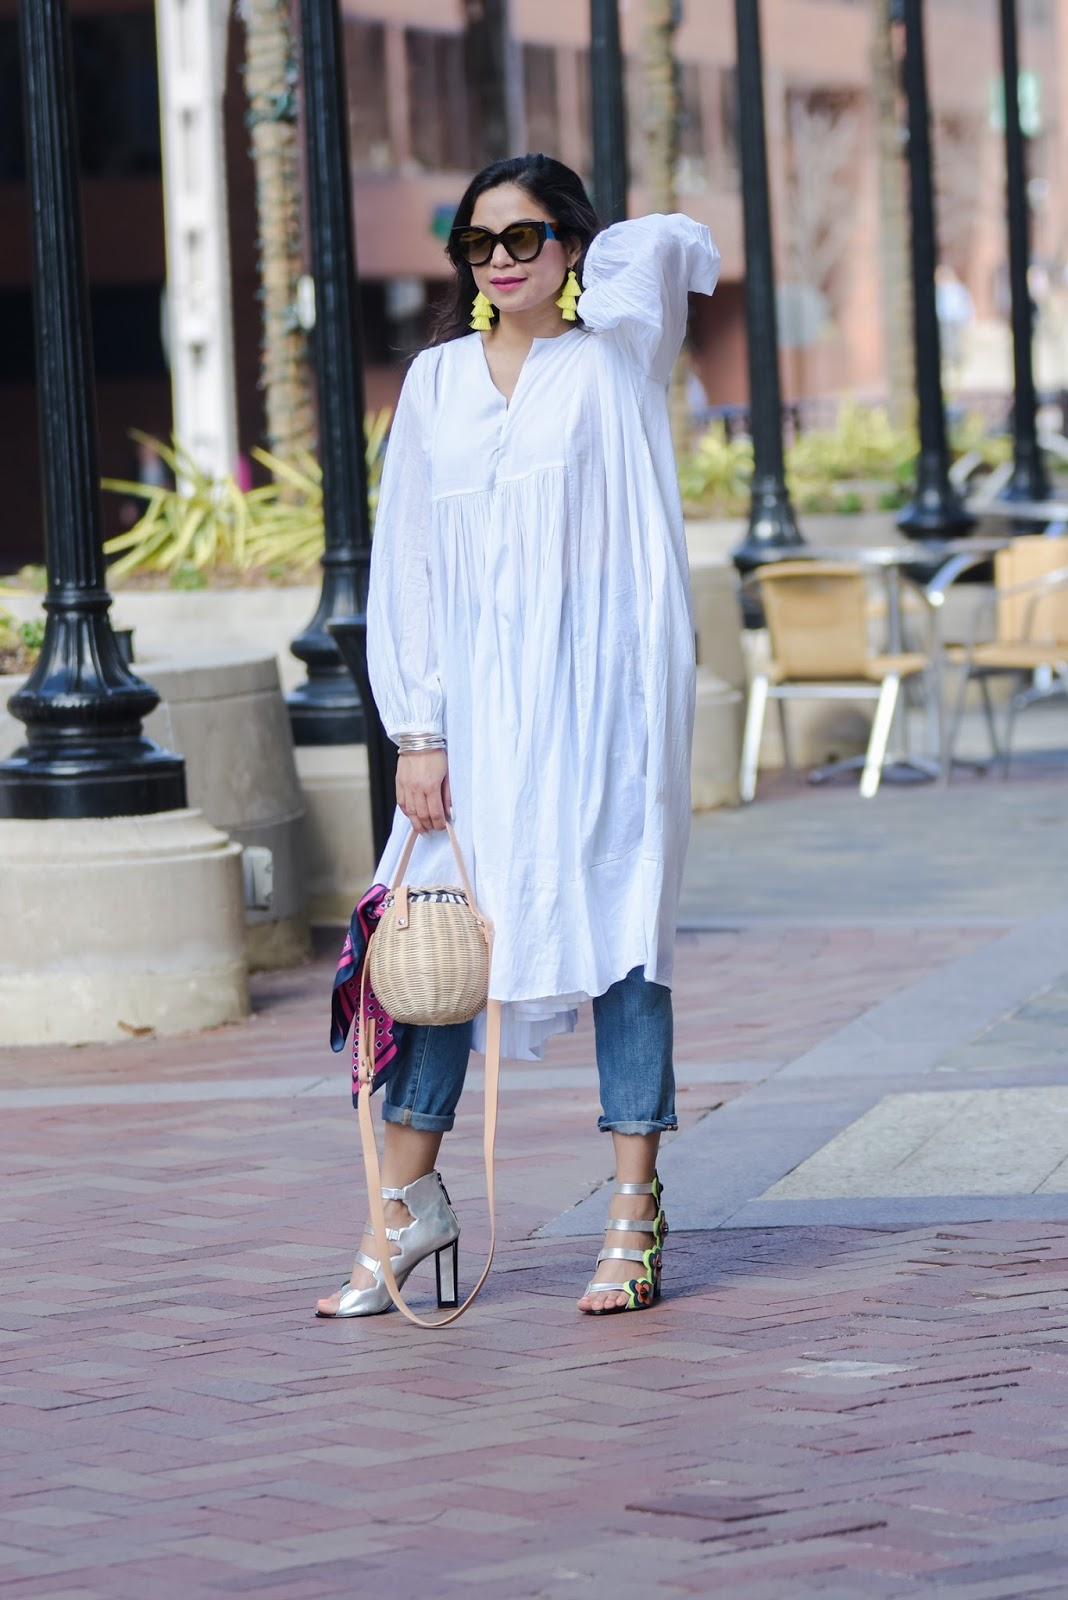 how to wear white in spring, white summer dress, dress over jeans, happy holi, holi outfit, indian, dc blogger, fashion, street style, kat maconie sandals, free people tunic, embellished jeans, myriad musings